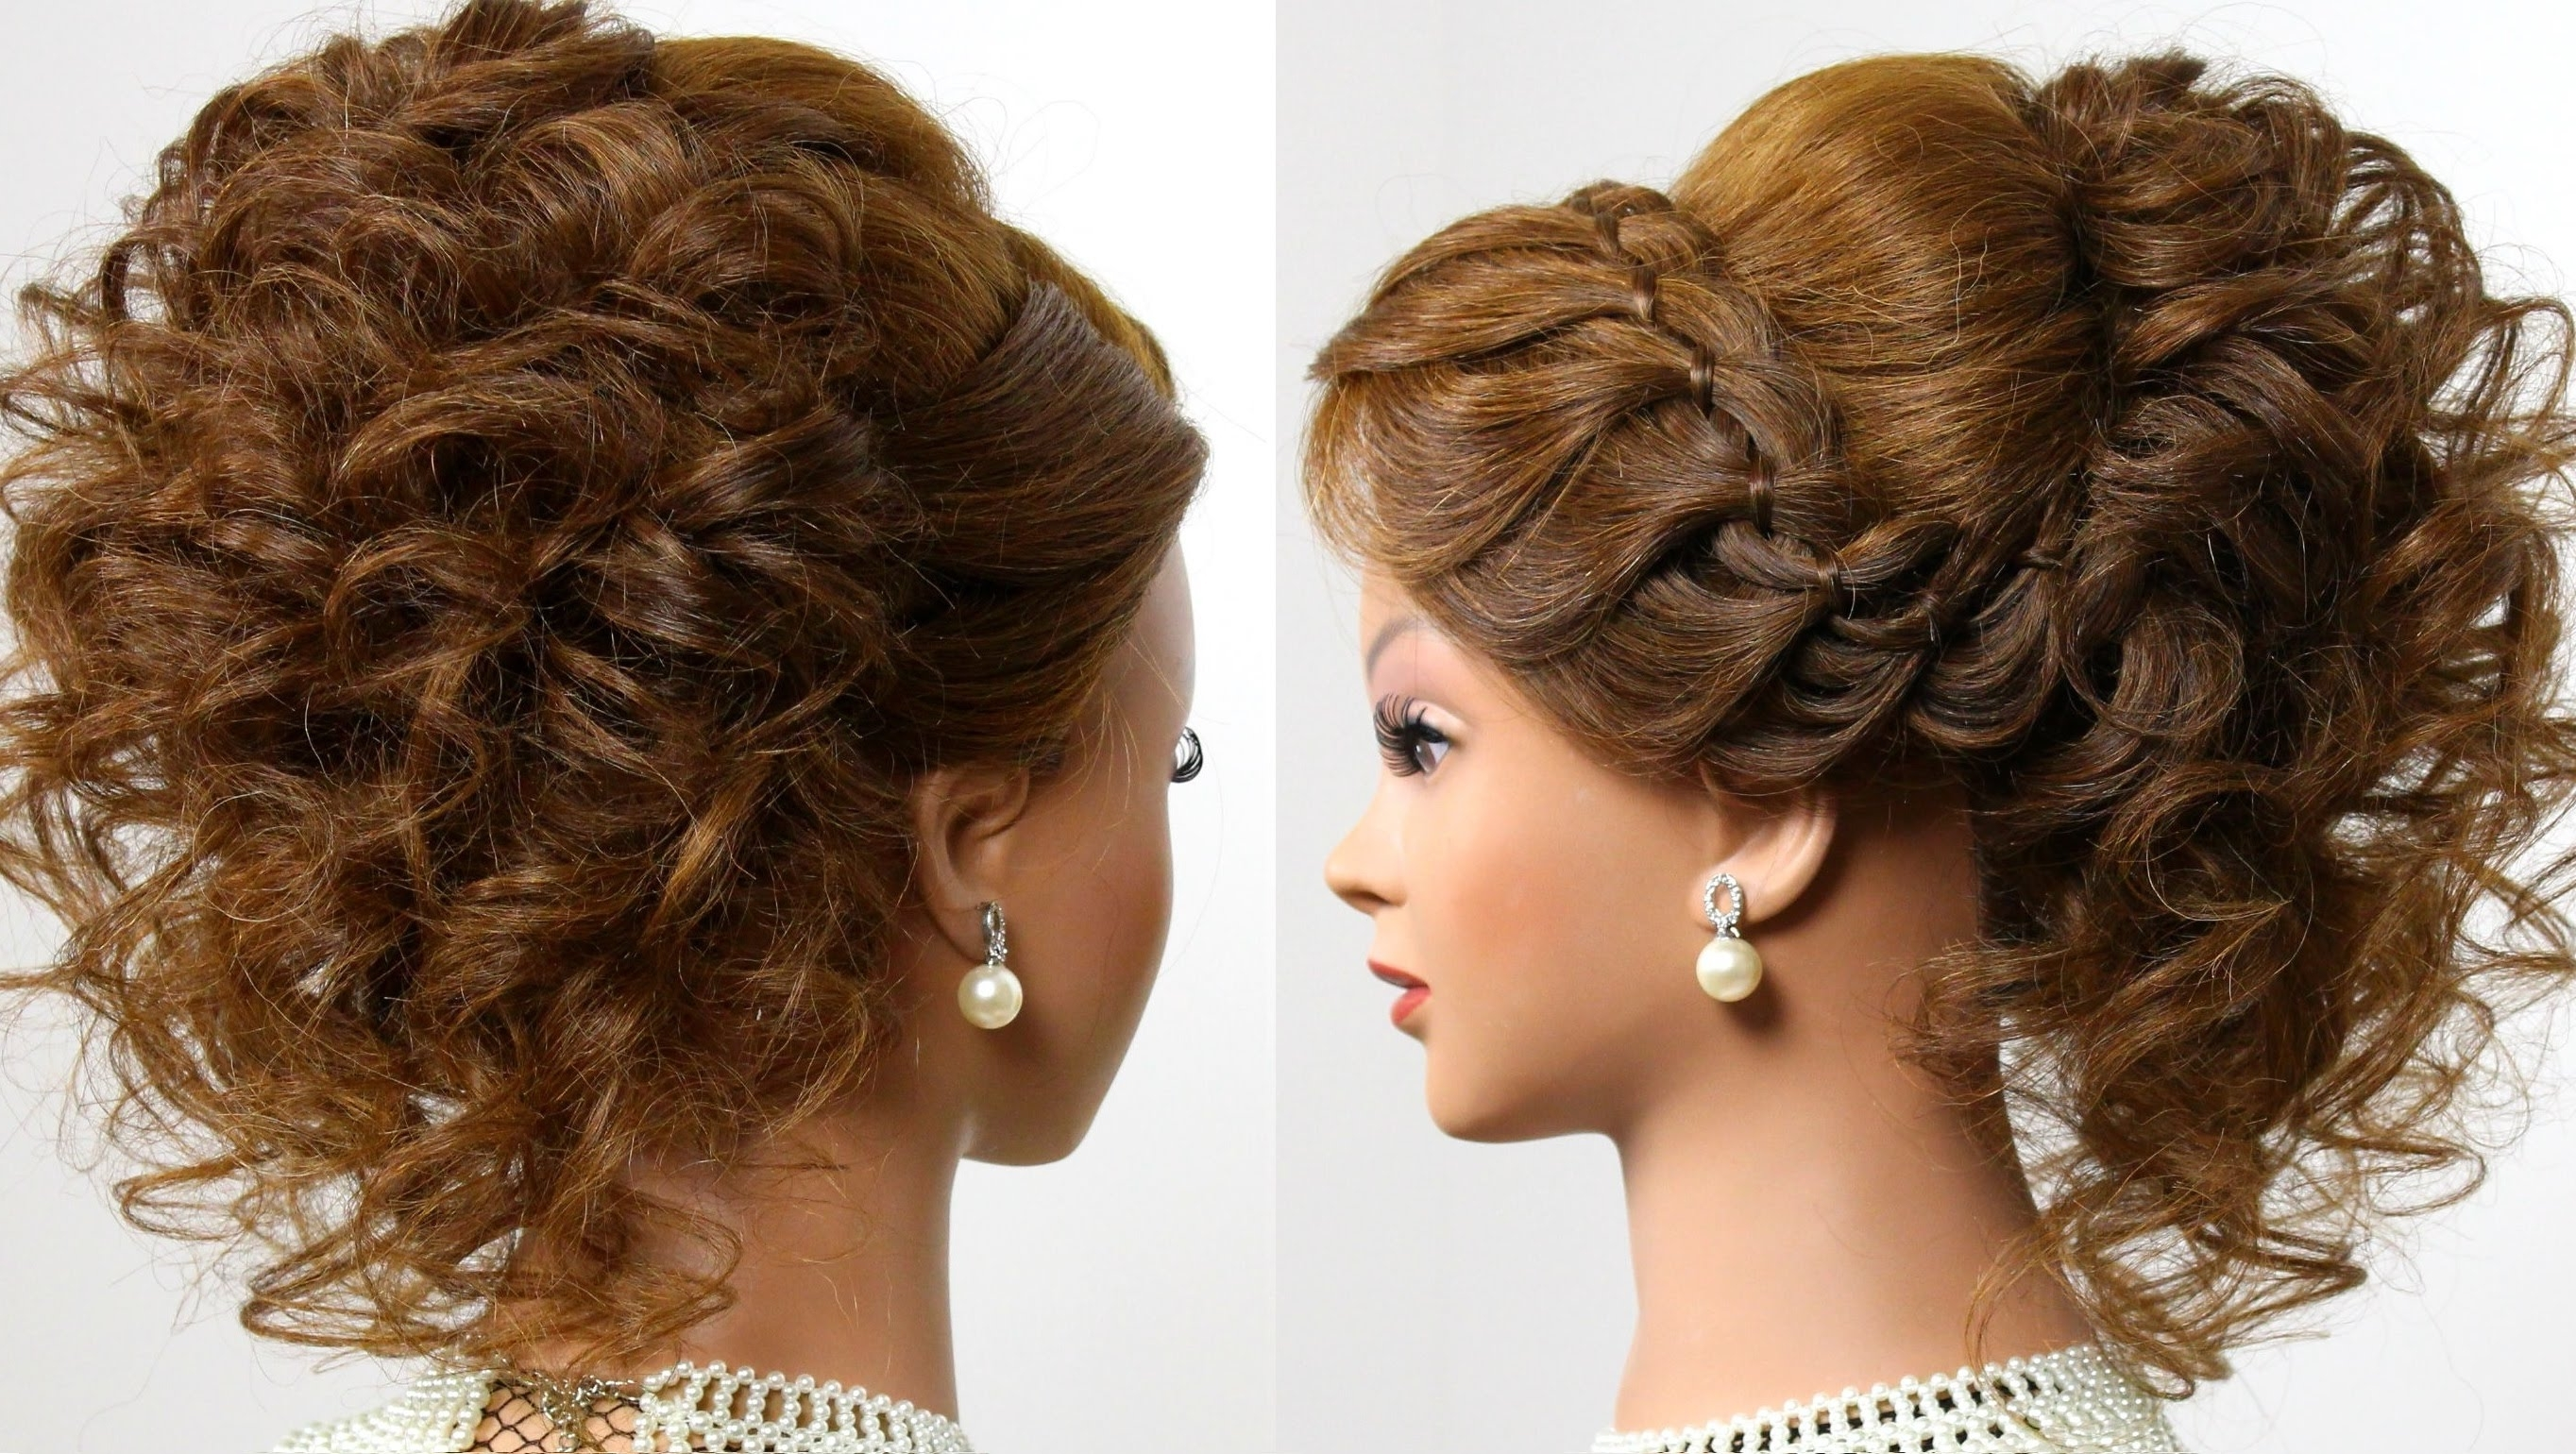 Popular Wedding Evening Hairstyles For Romantic Braided Prom Hairstyle For Long Hair Sensational Formal (View 9 of 15)